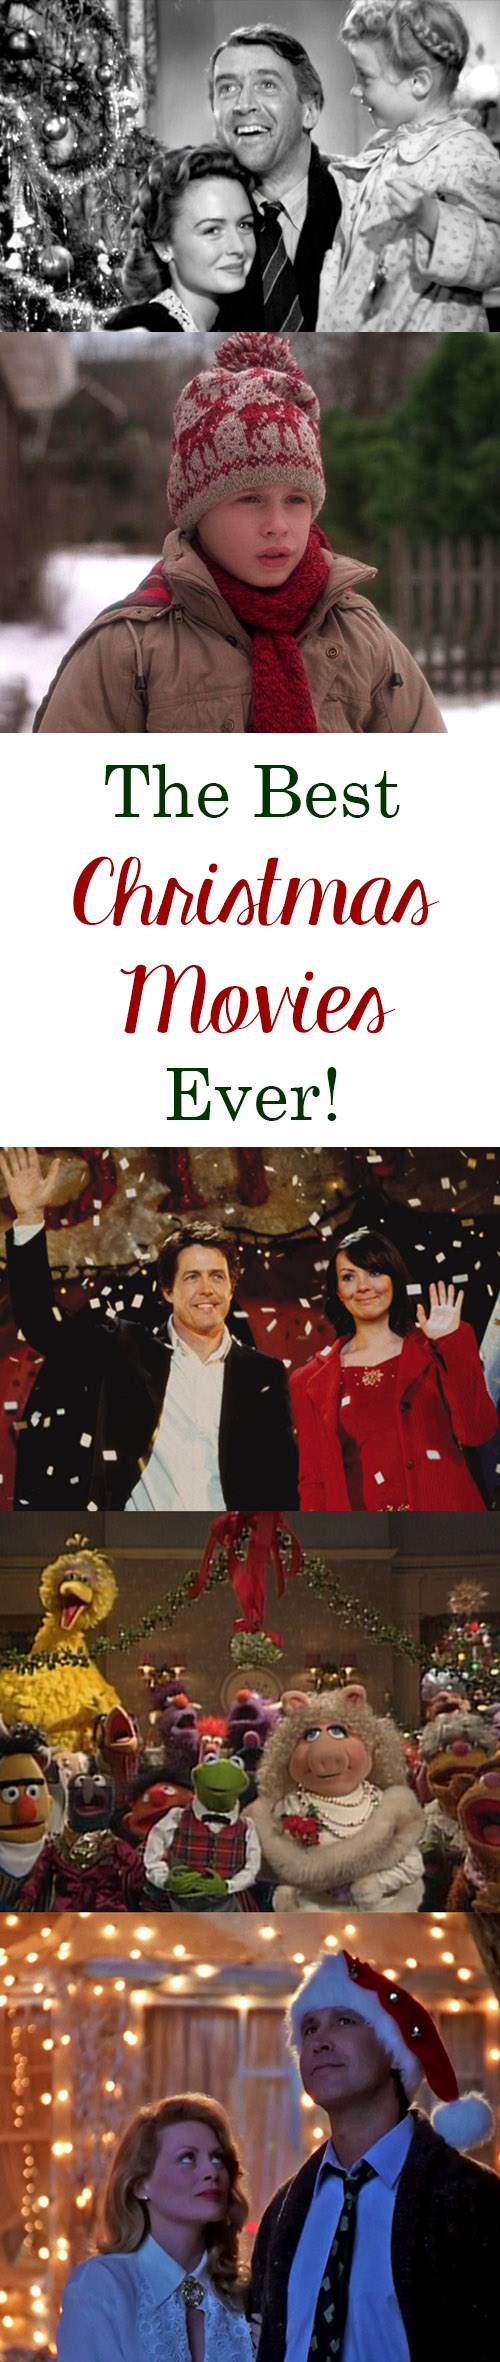 the-best-christmas-movies-ever